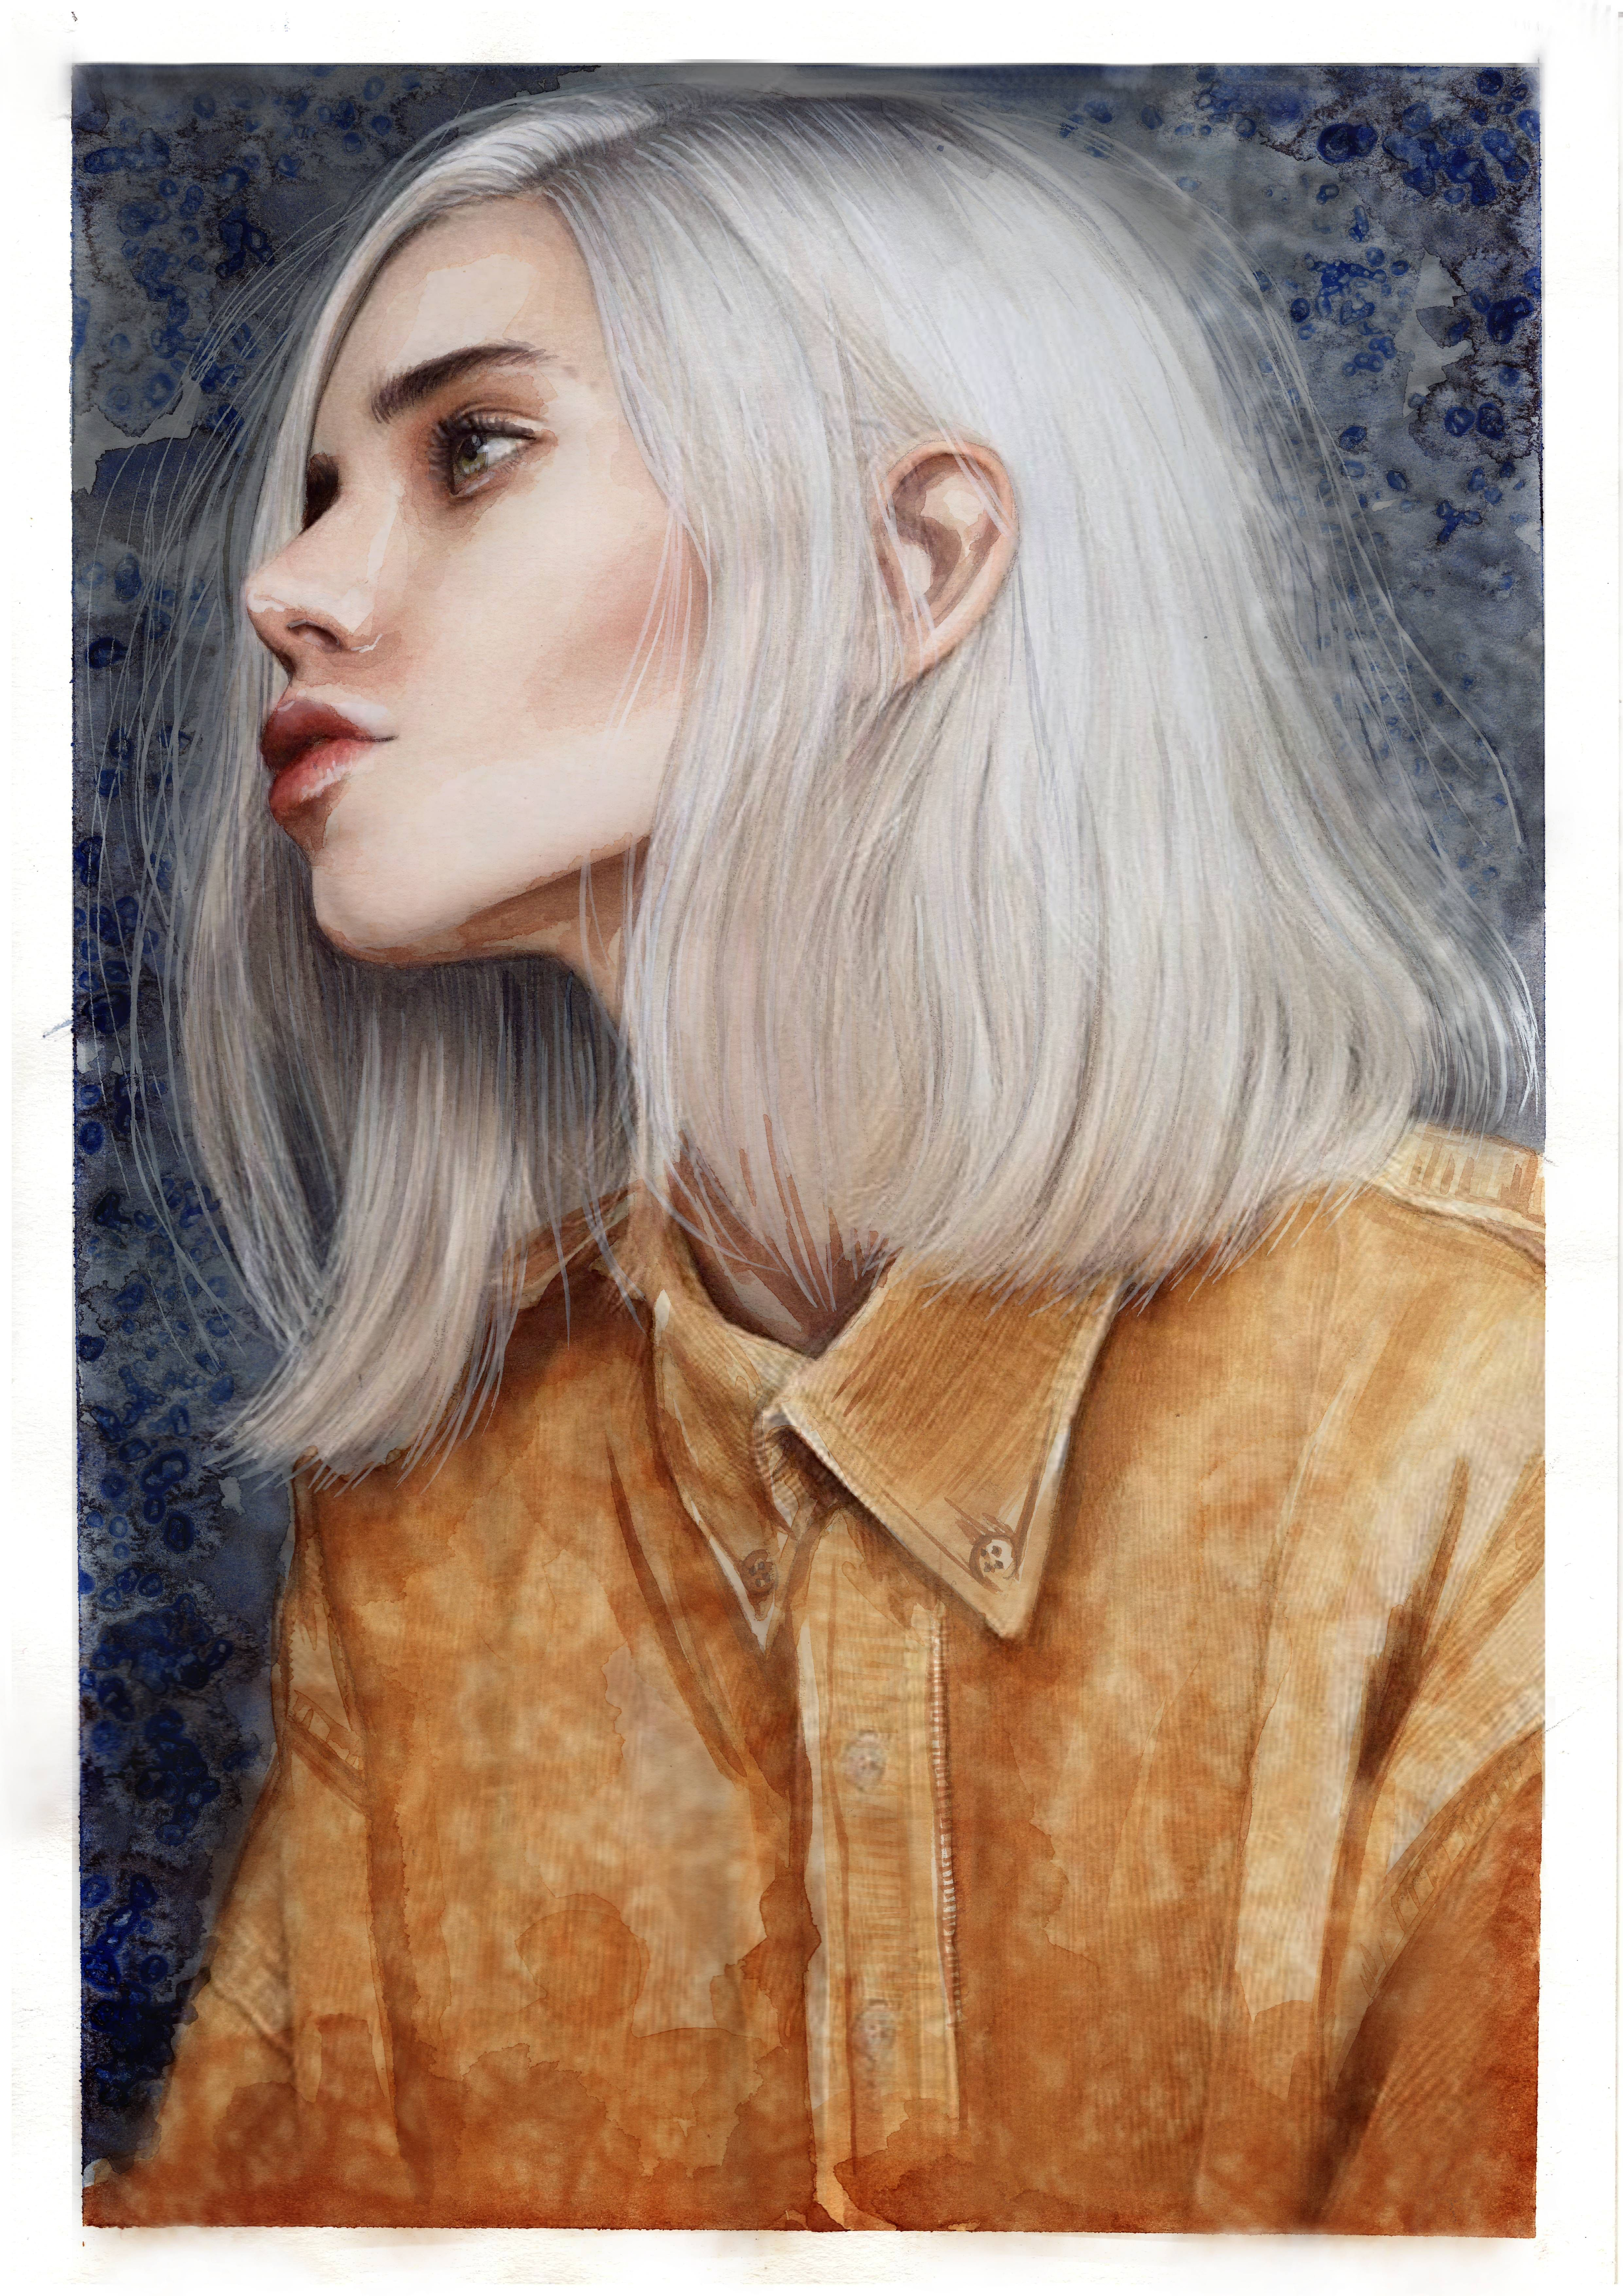 White Hair Watercolor And Whitw Ink Pen 20x30 Cm Posted By U